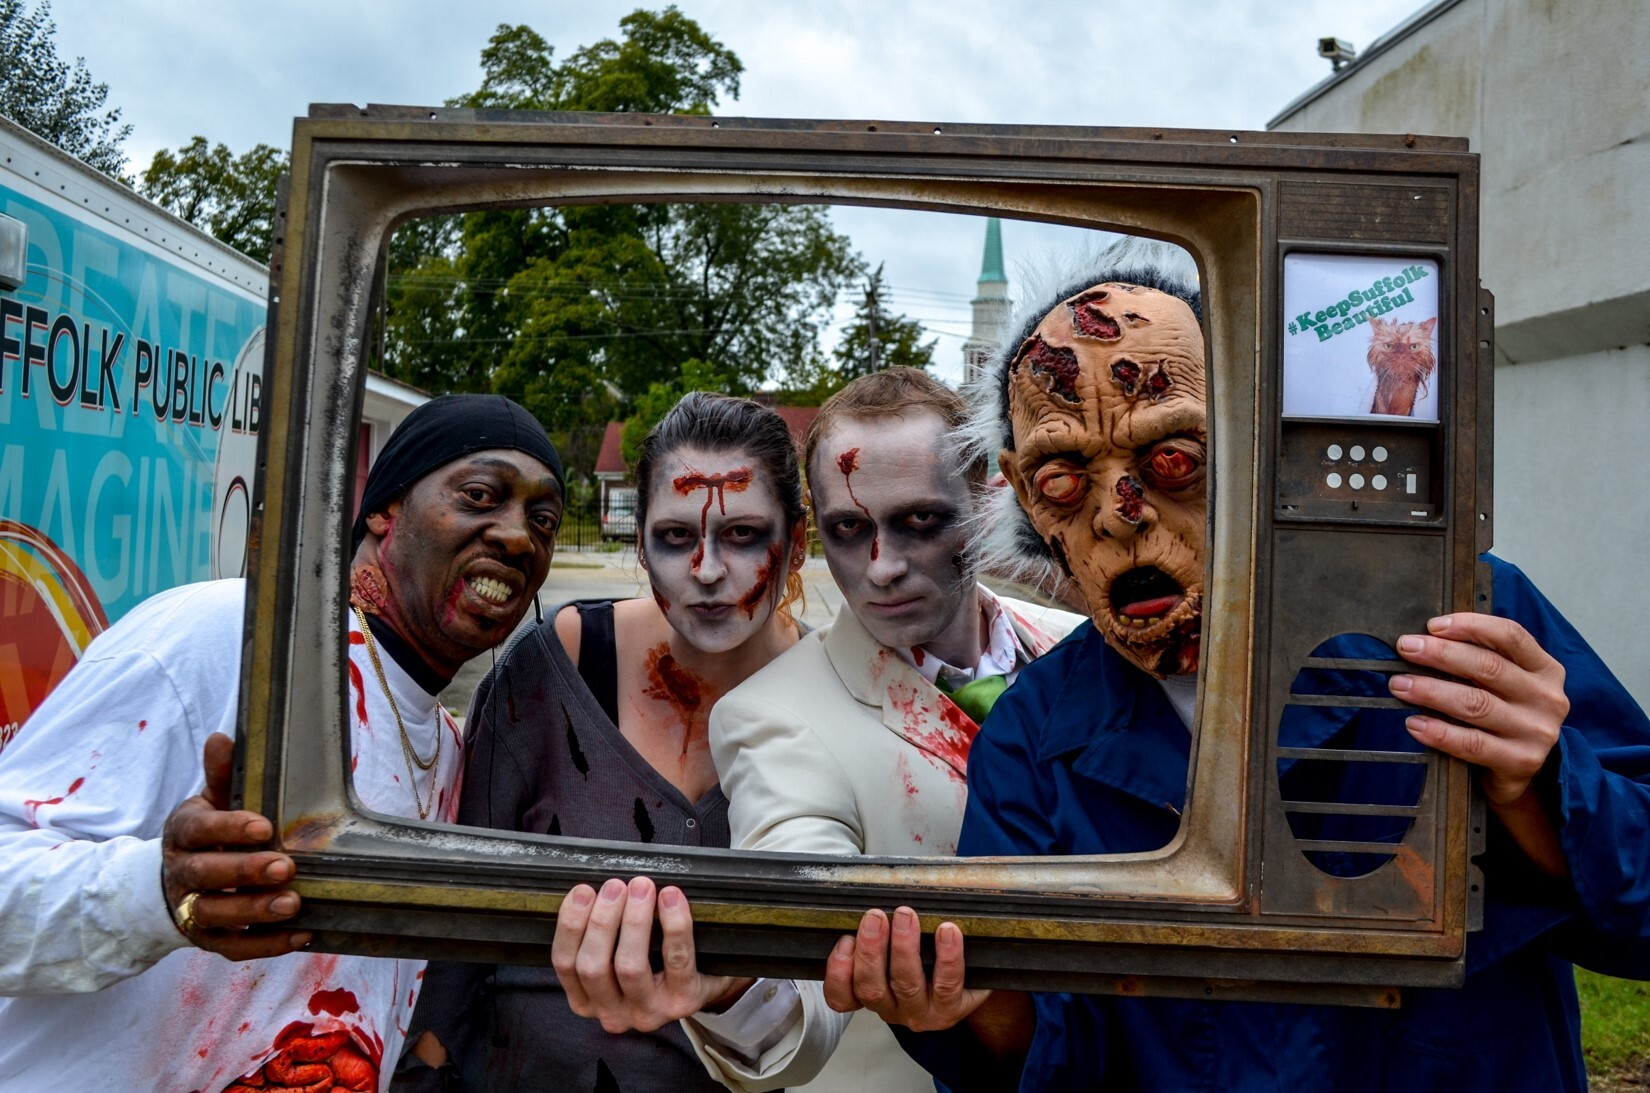 Photos: Keep Suffolk Beautiful to host second 'Zombie Litter Cleanup' on October26